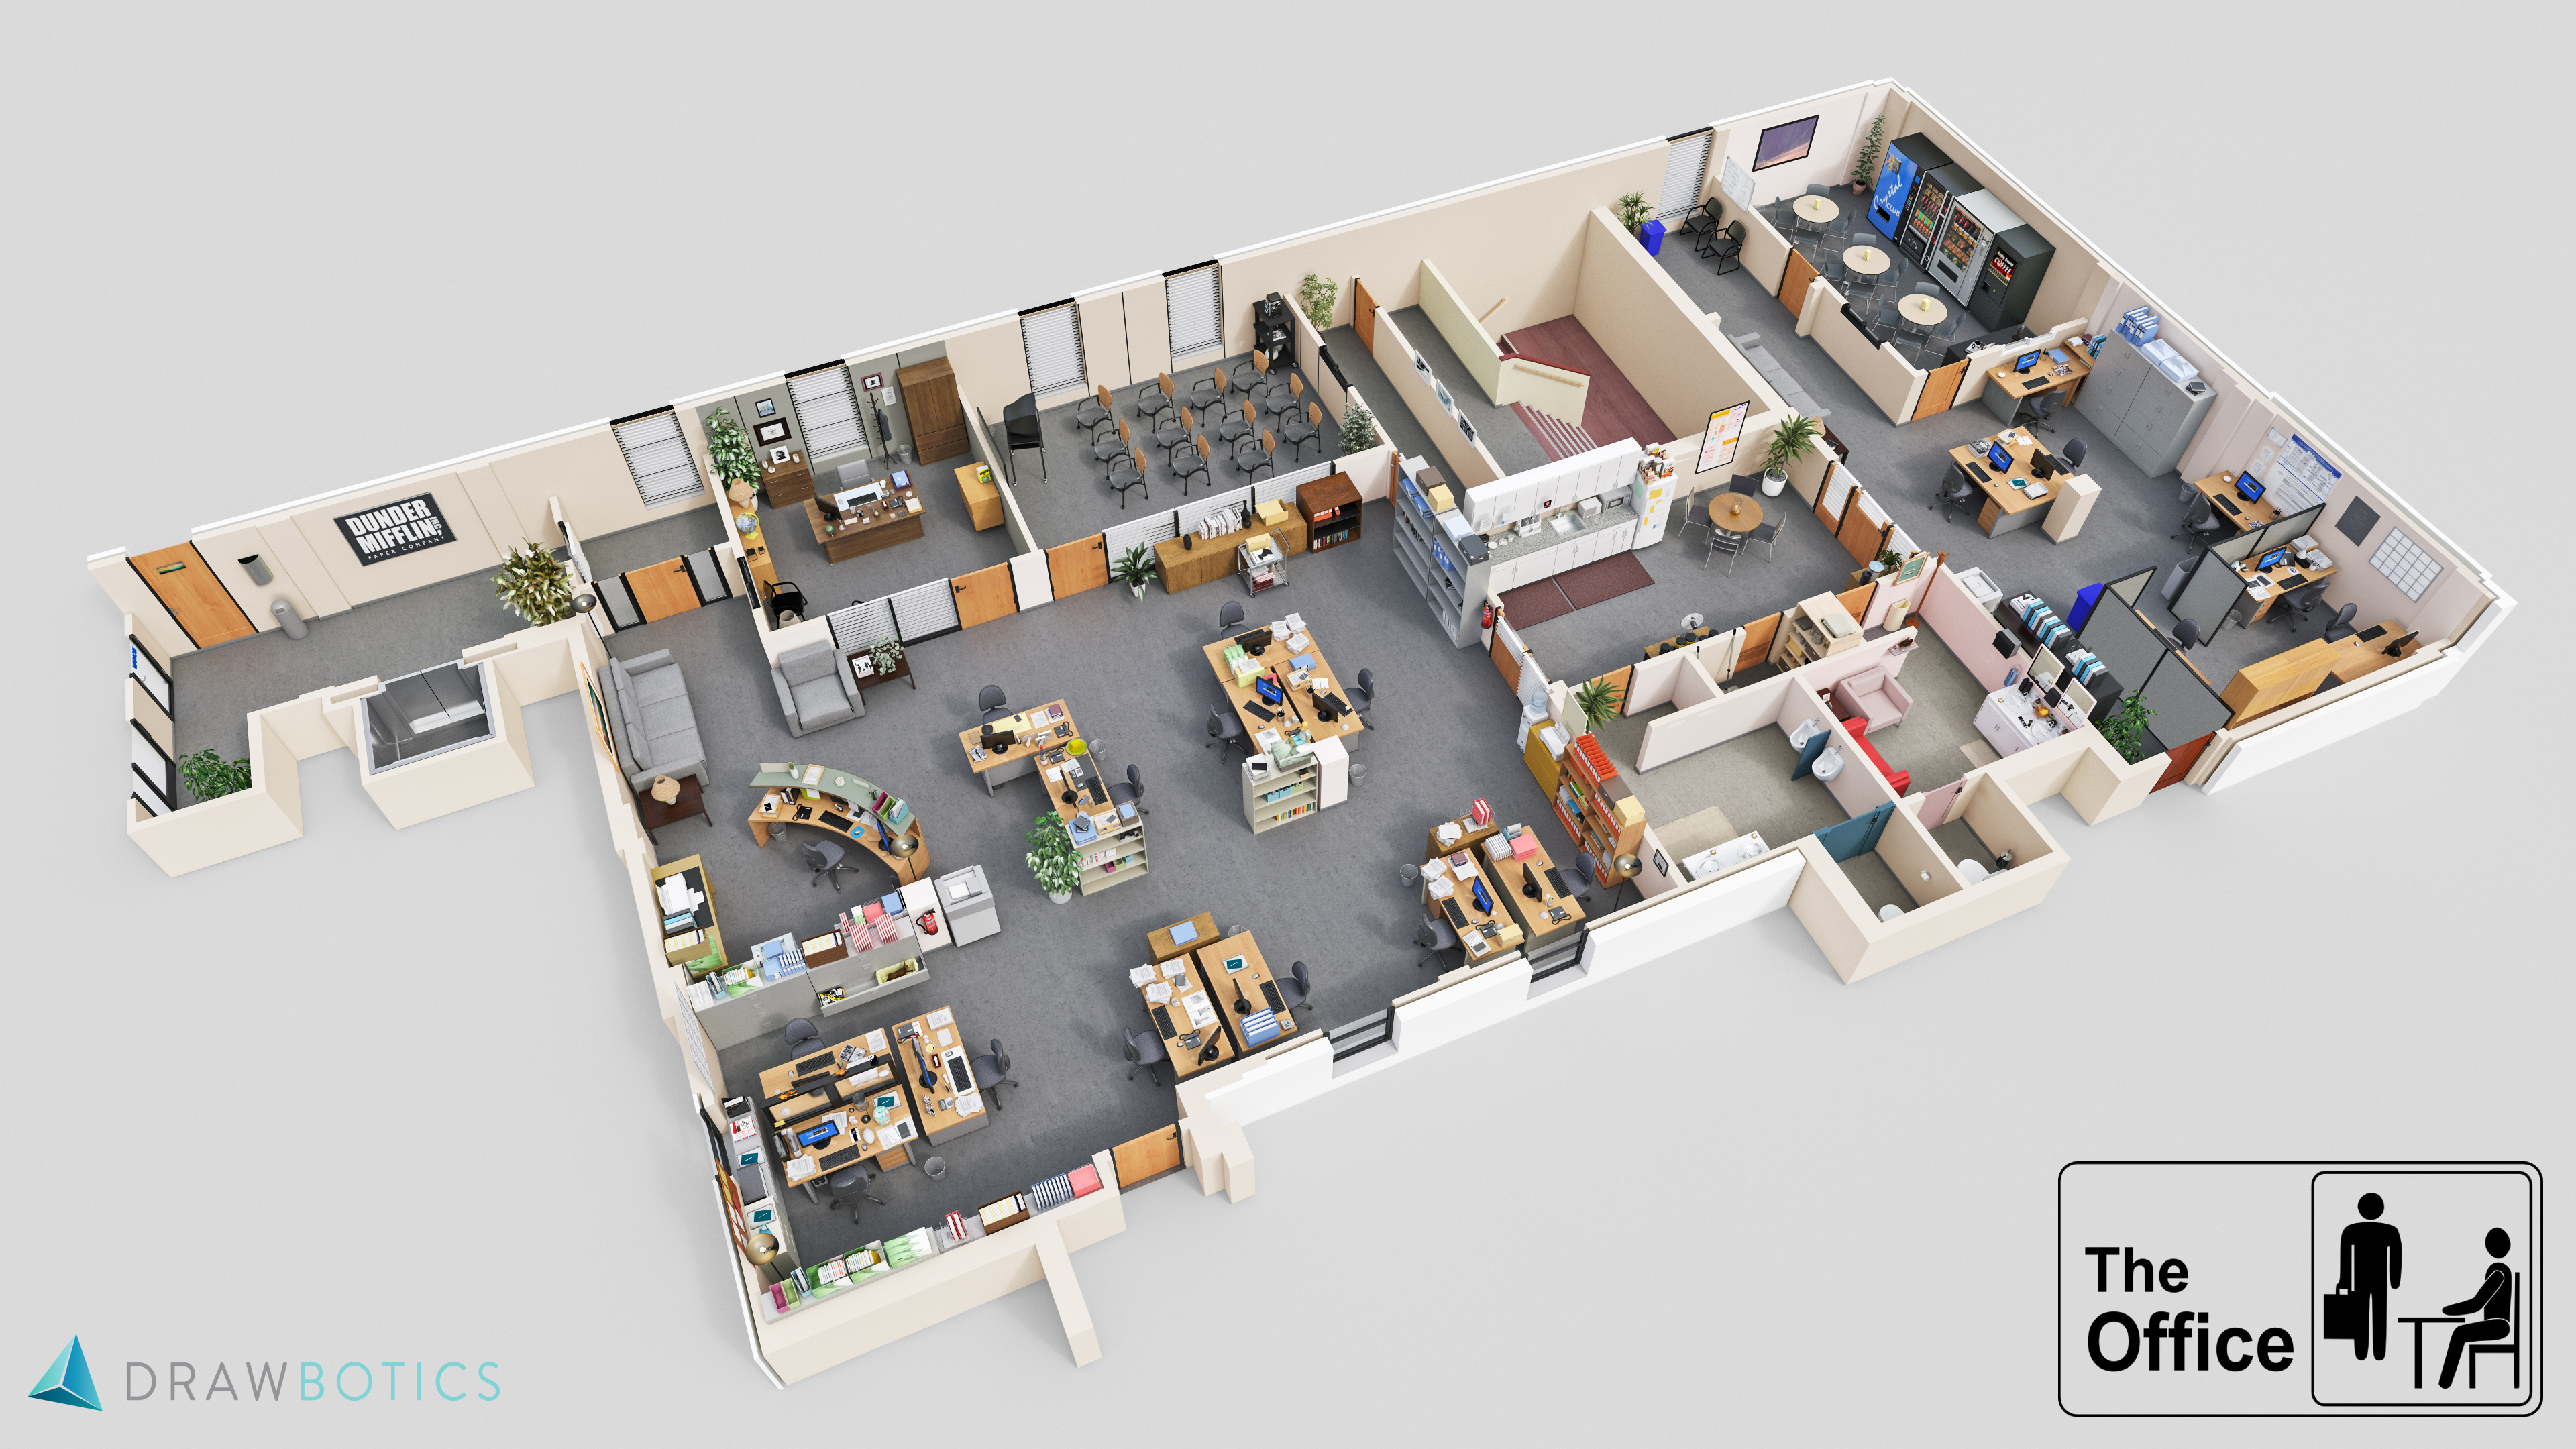 office floor plan design. 1 the office us floor plan design